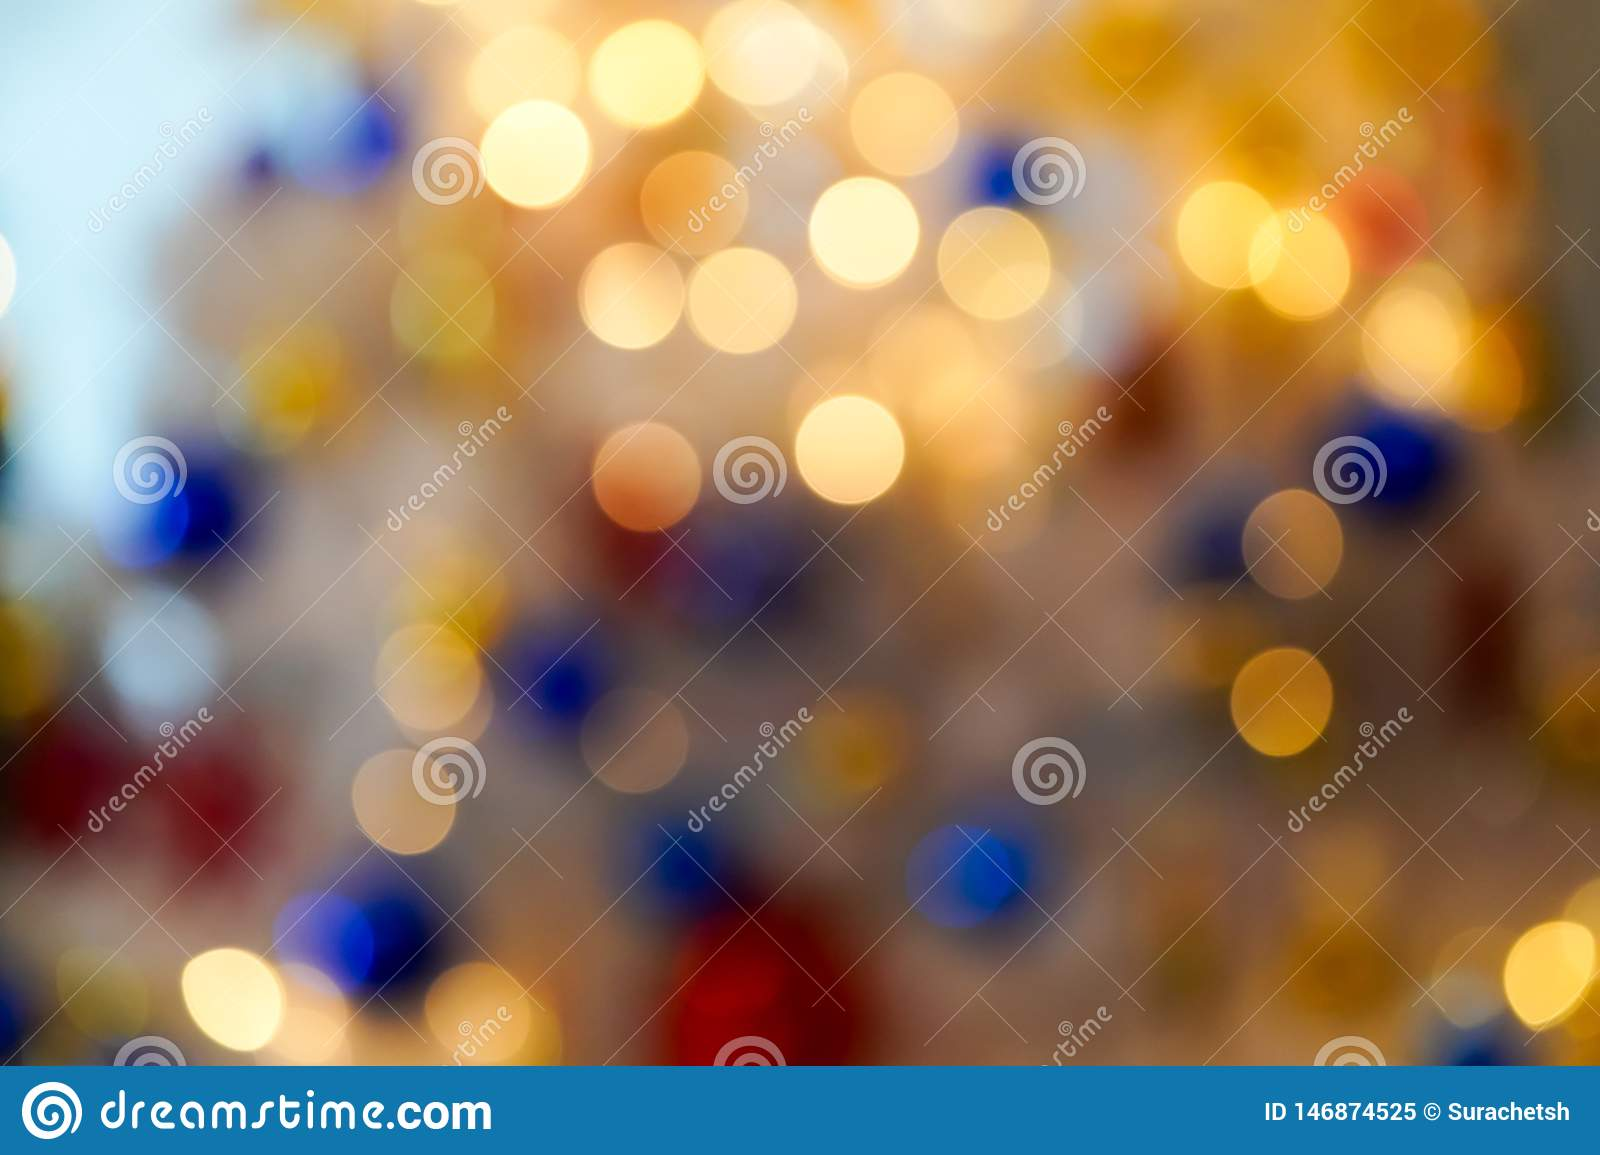 Colourful & Beautiful Blurry circle bokeh, out of focus background in the Christmas concept and theme